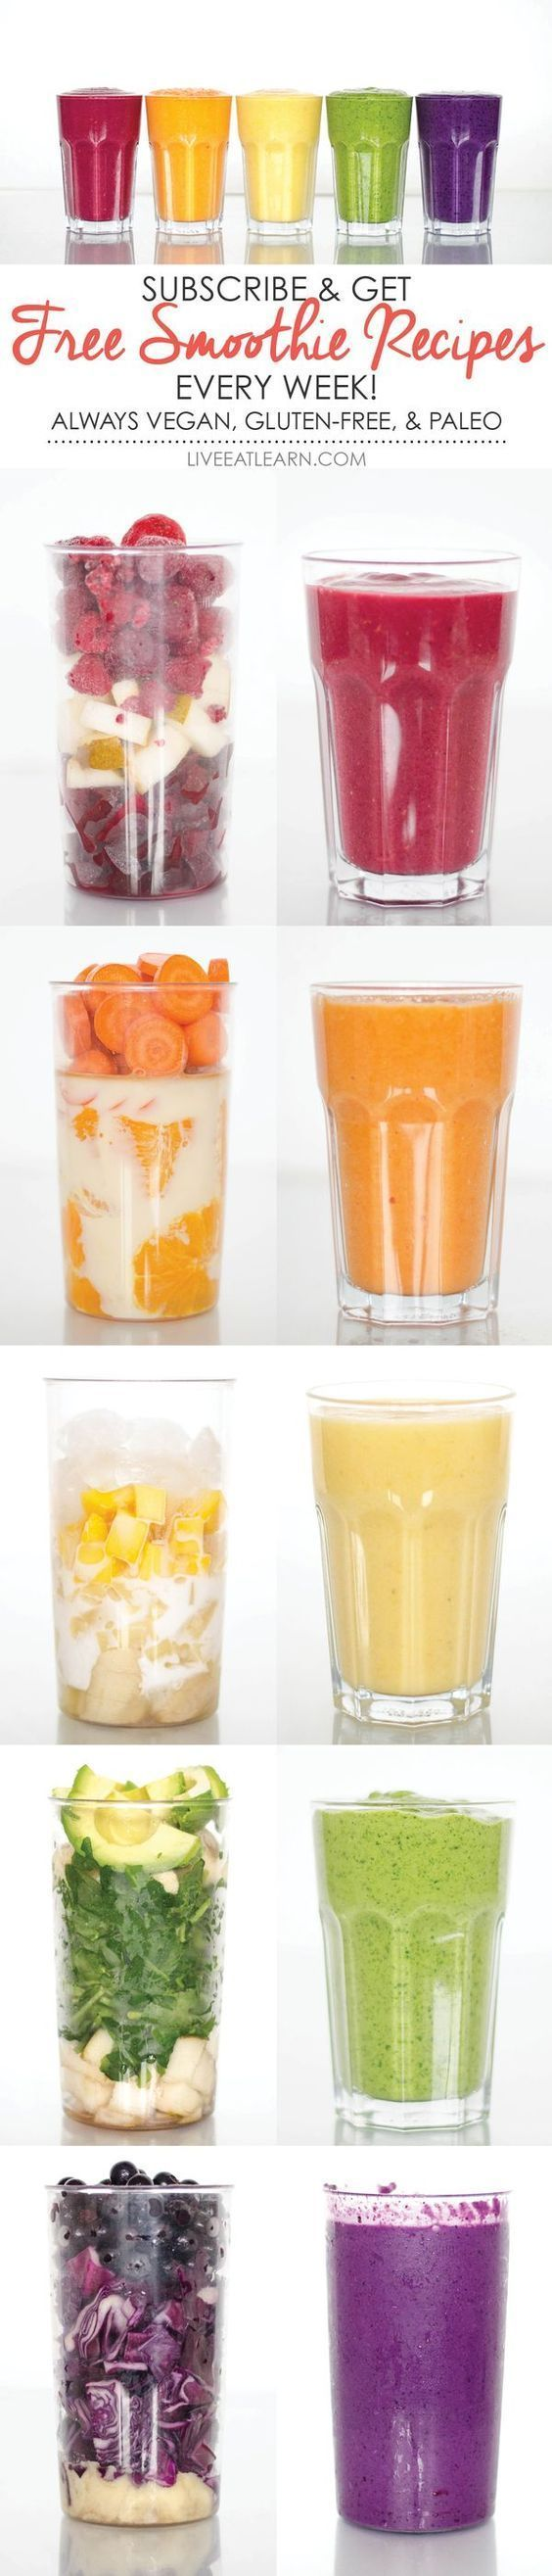 Healthy smoothie recipes to give you the boost of energy you need on Monday morning, delivered right to your inbox each week! Perfect as a quick, on the go meal, for breakfast, and for the whole family. Always compatible with a vegan, vegetarian, paleo, gluten-free, and whole foods diet. | https://lomejordelaweb.es/